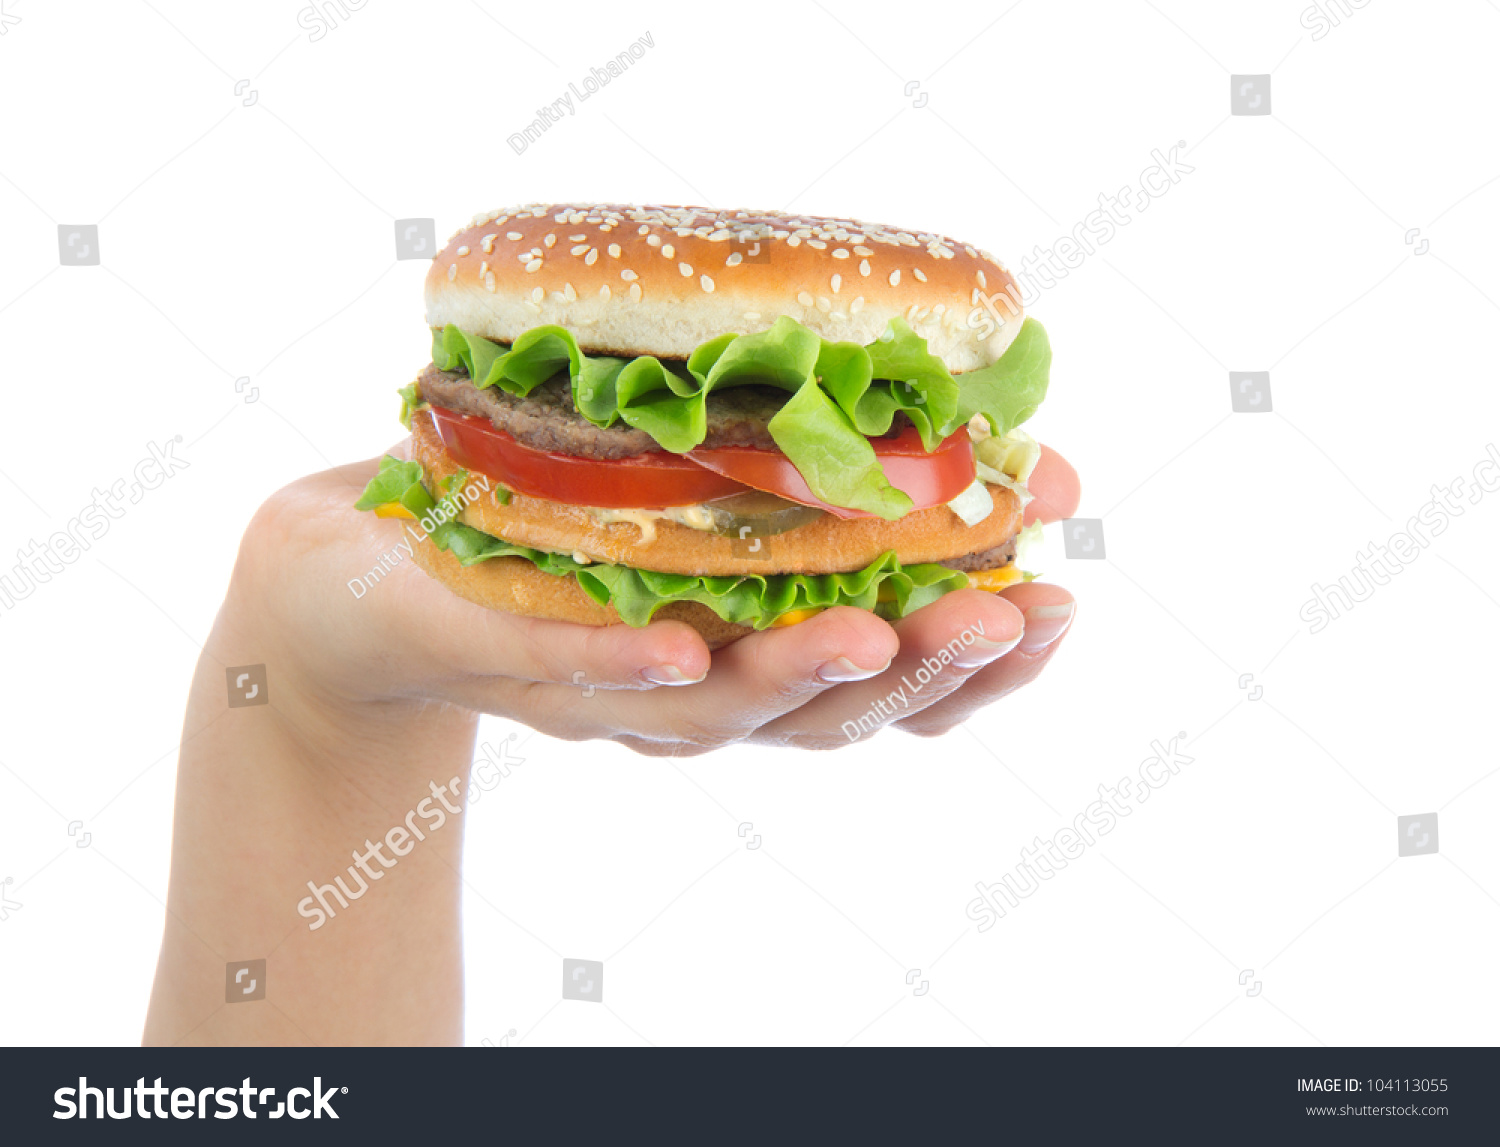 how many calories in hamburger big burger sandwich in hand isolated on a white background stock. Black Bedroom Furniture Sets. Home Design Ideas